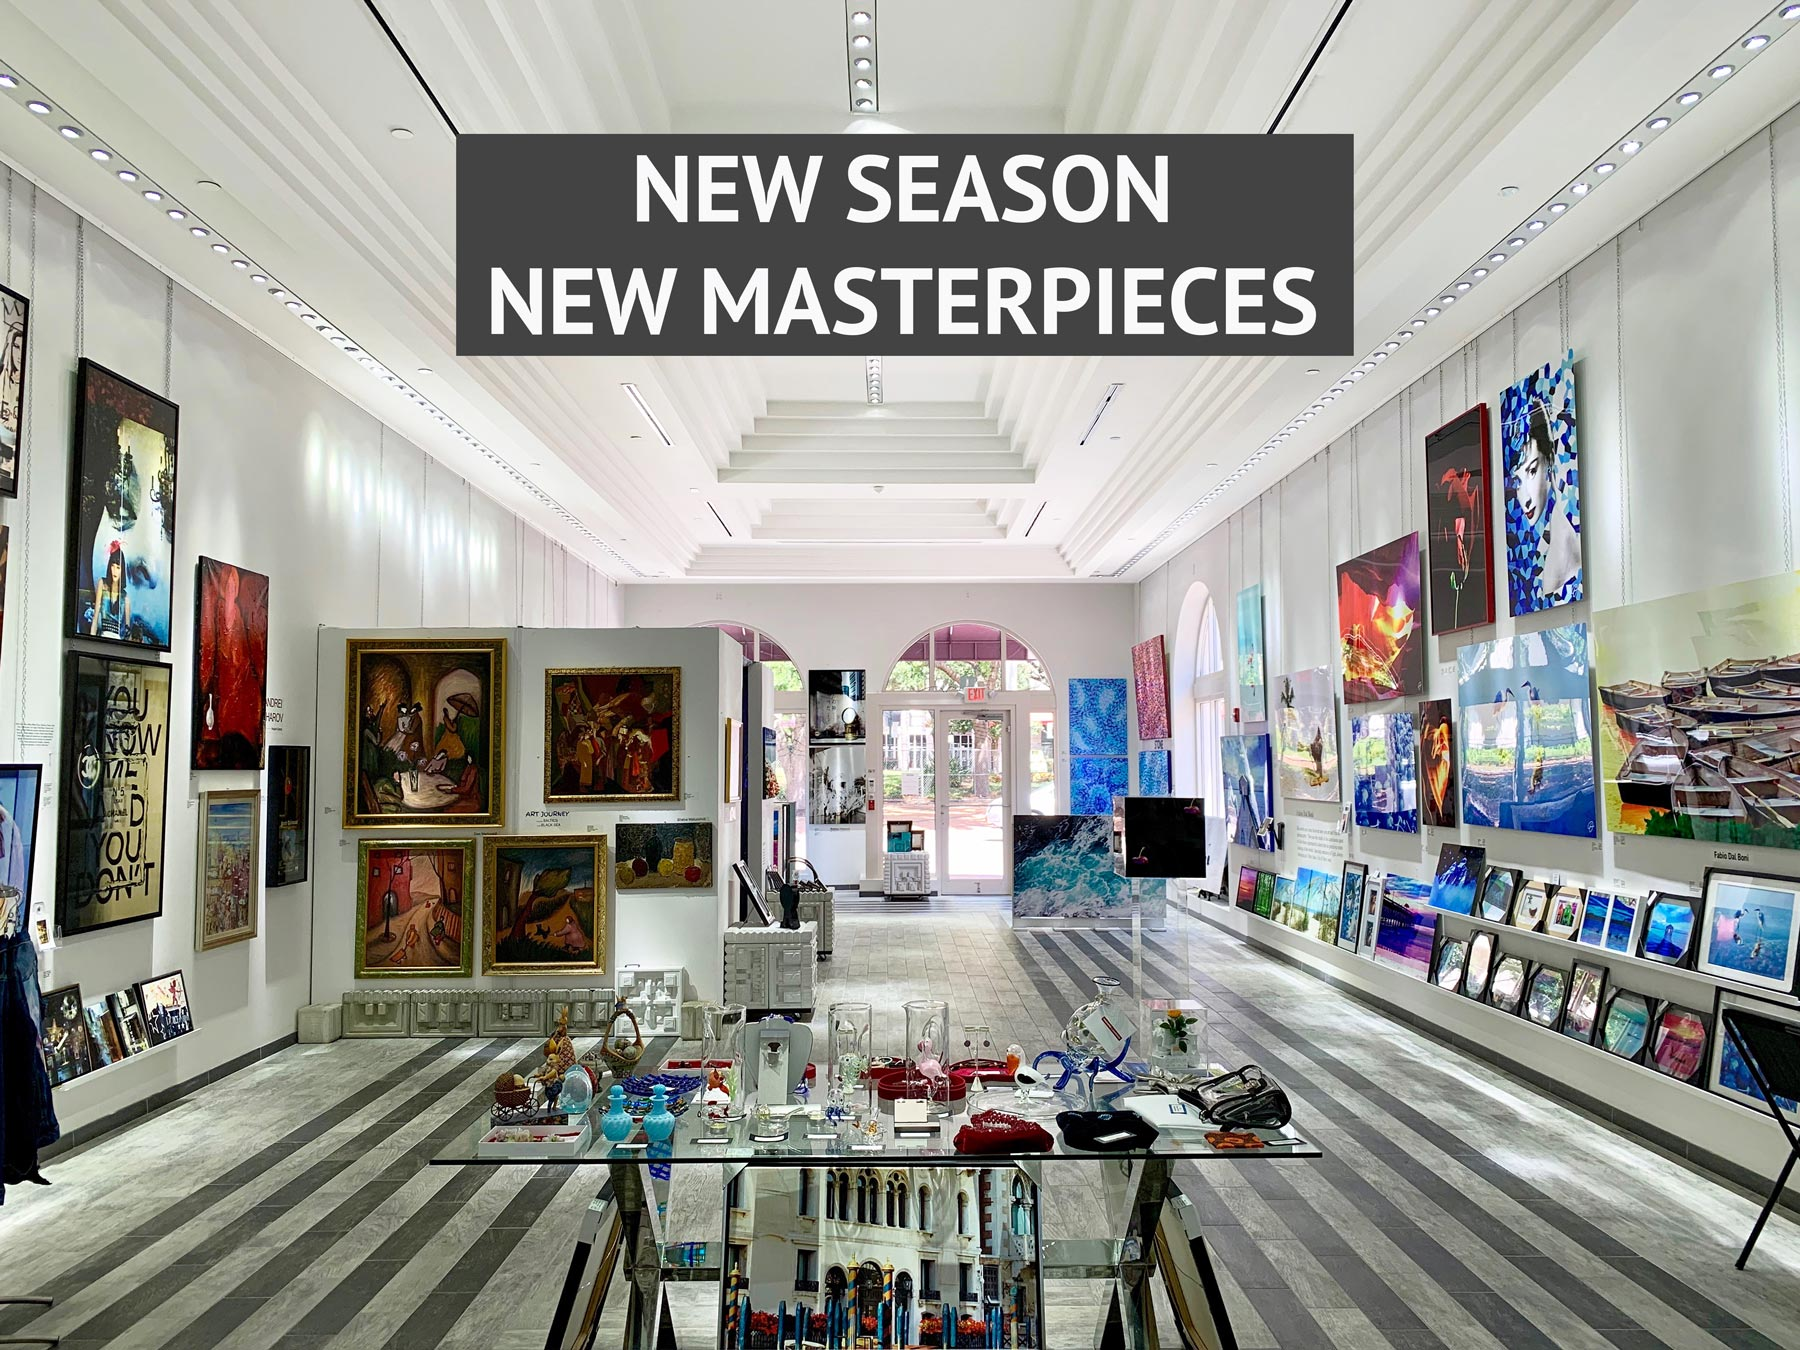 NEW MASTERPIECESProudly Presents